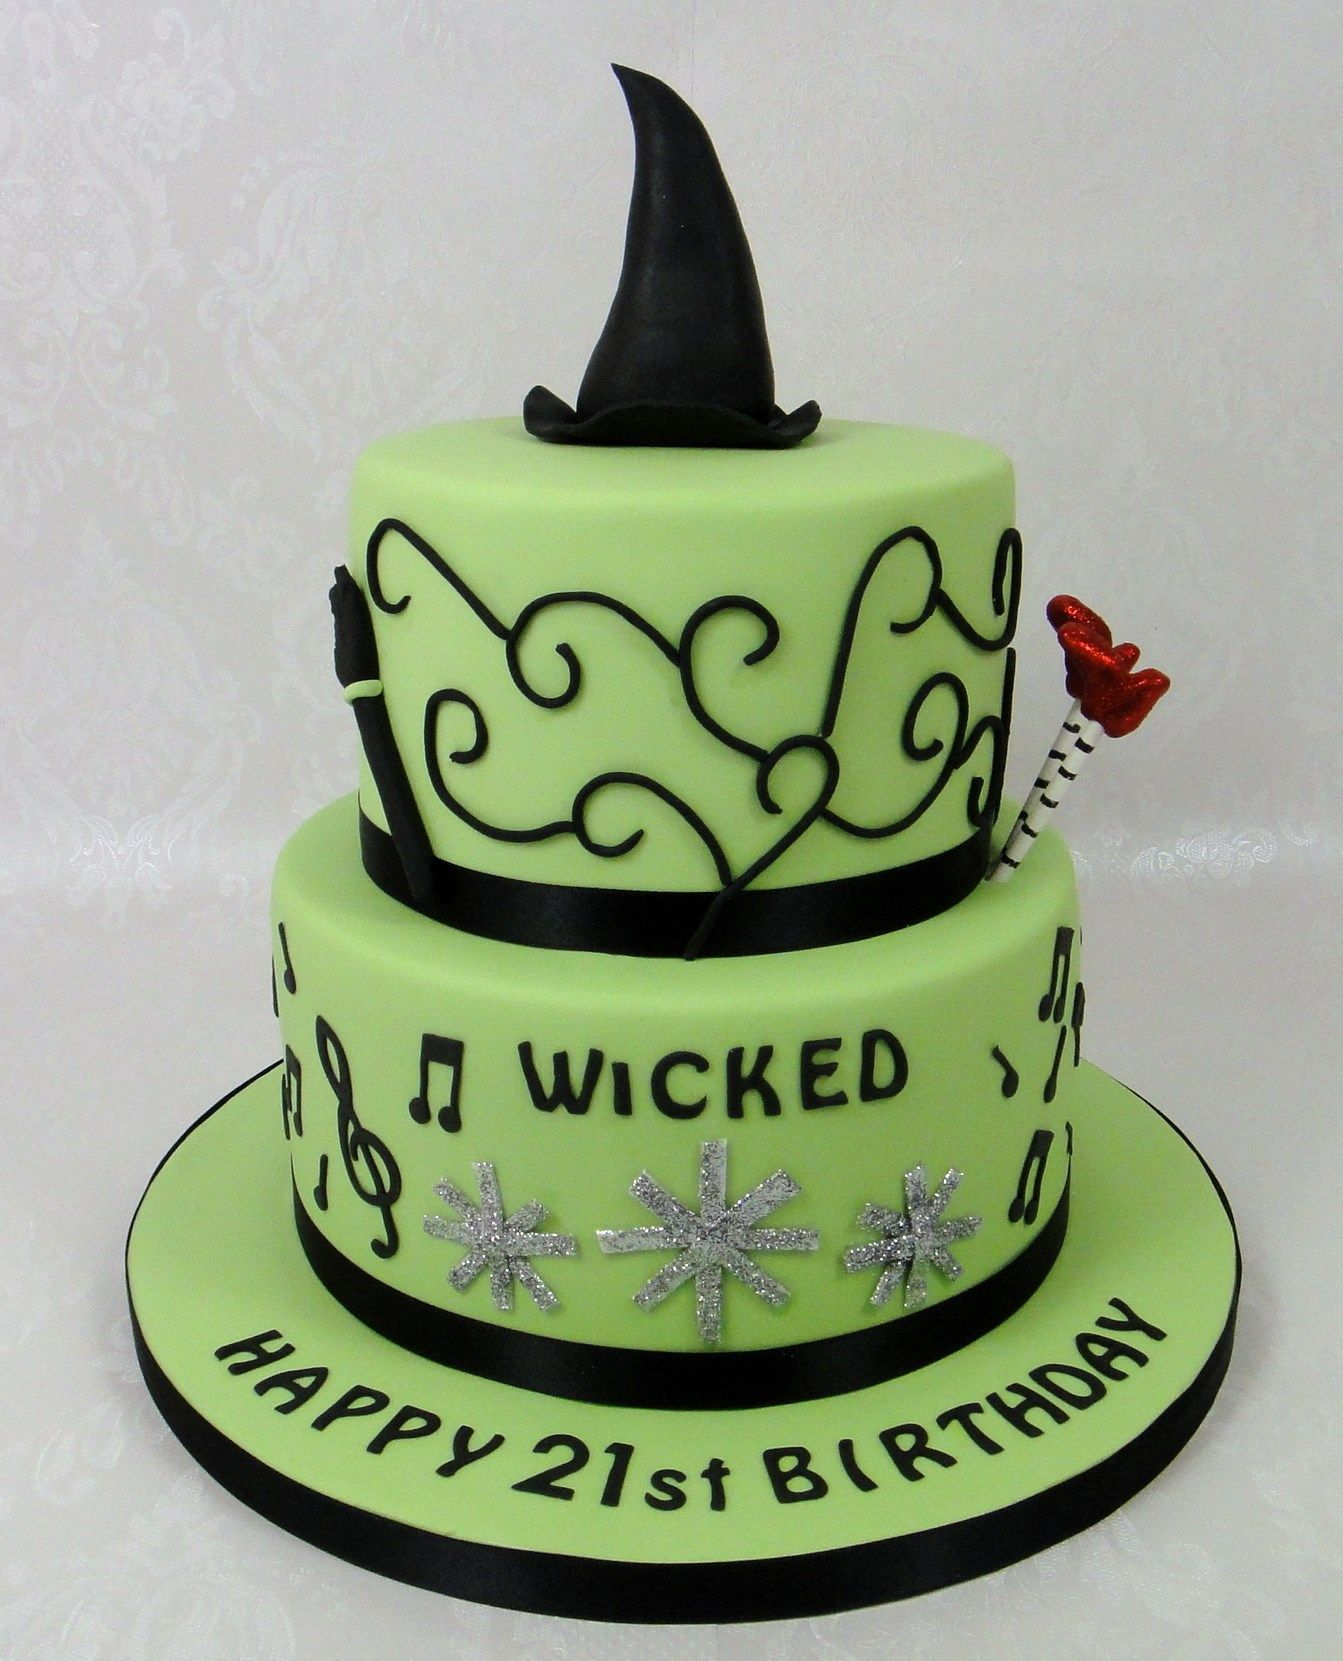 Wicked The Musical Themed Birthday Cake 07917815712 Www